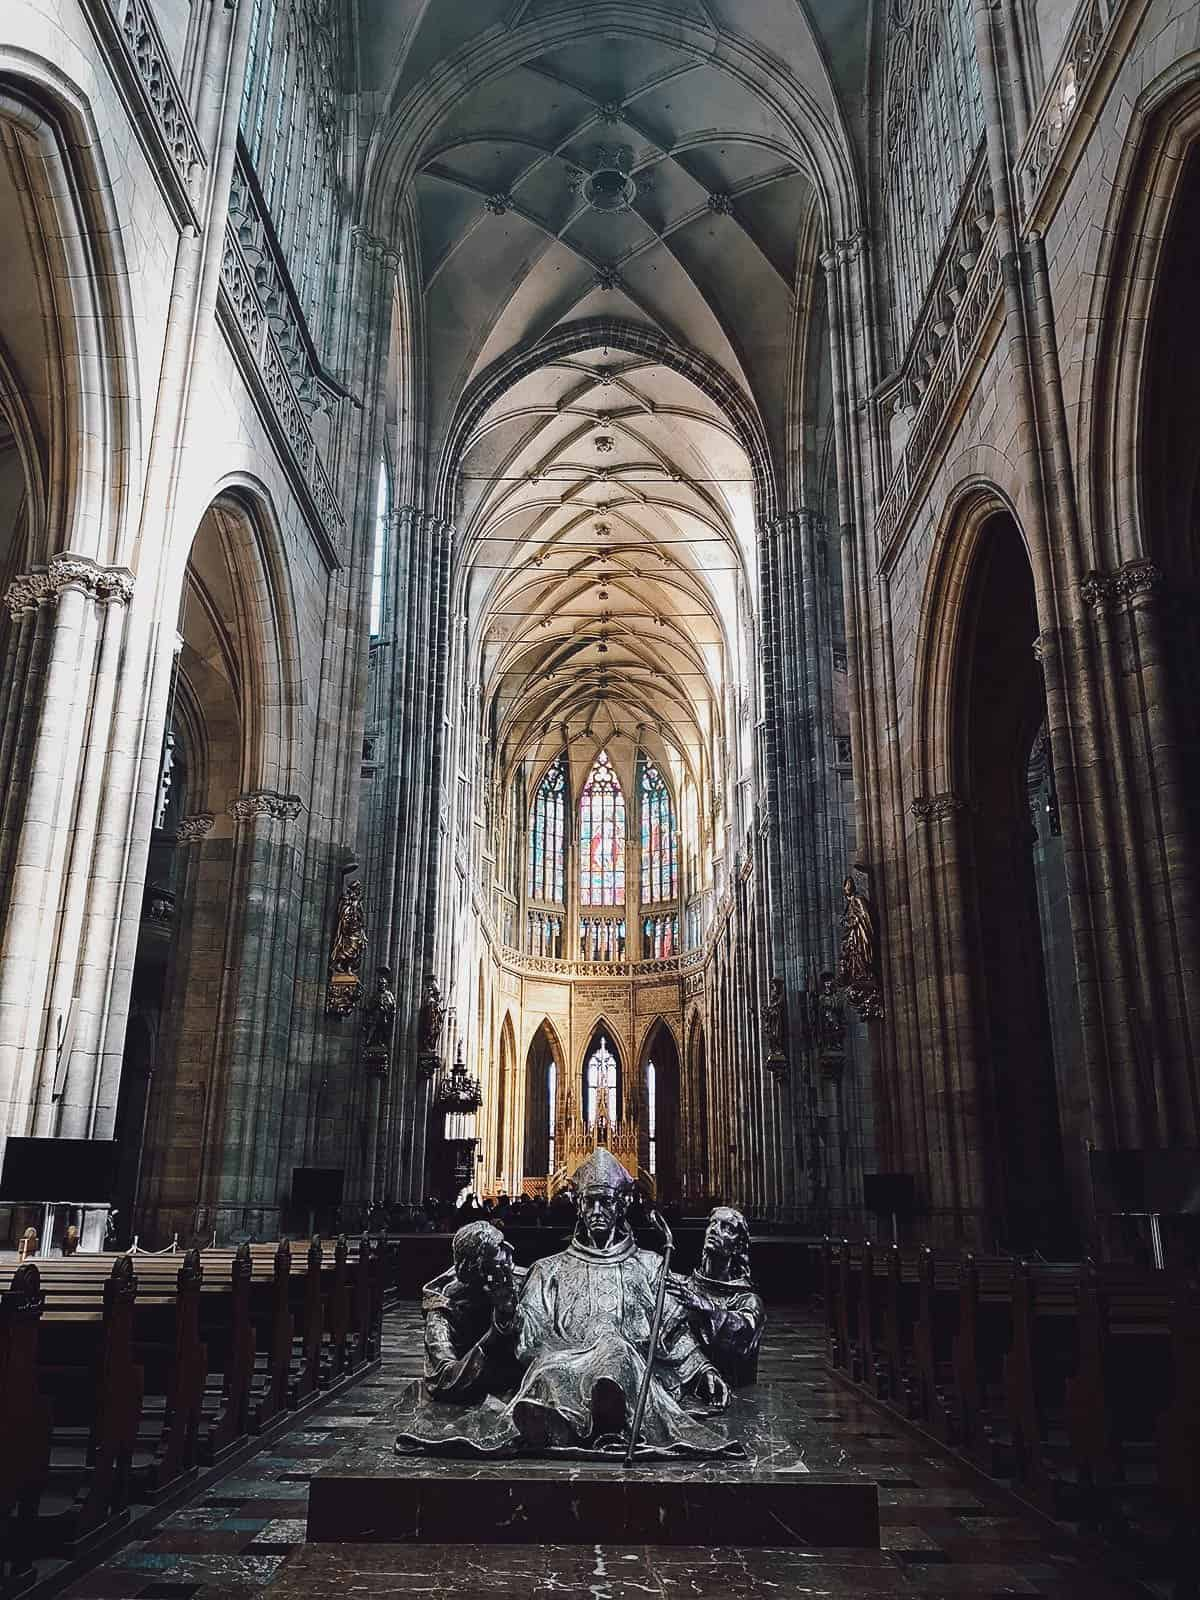 Inside St. Vitus Cathedral in Prague, Czechia